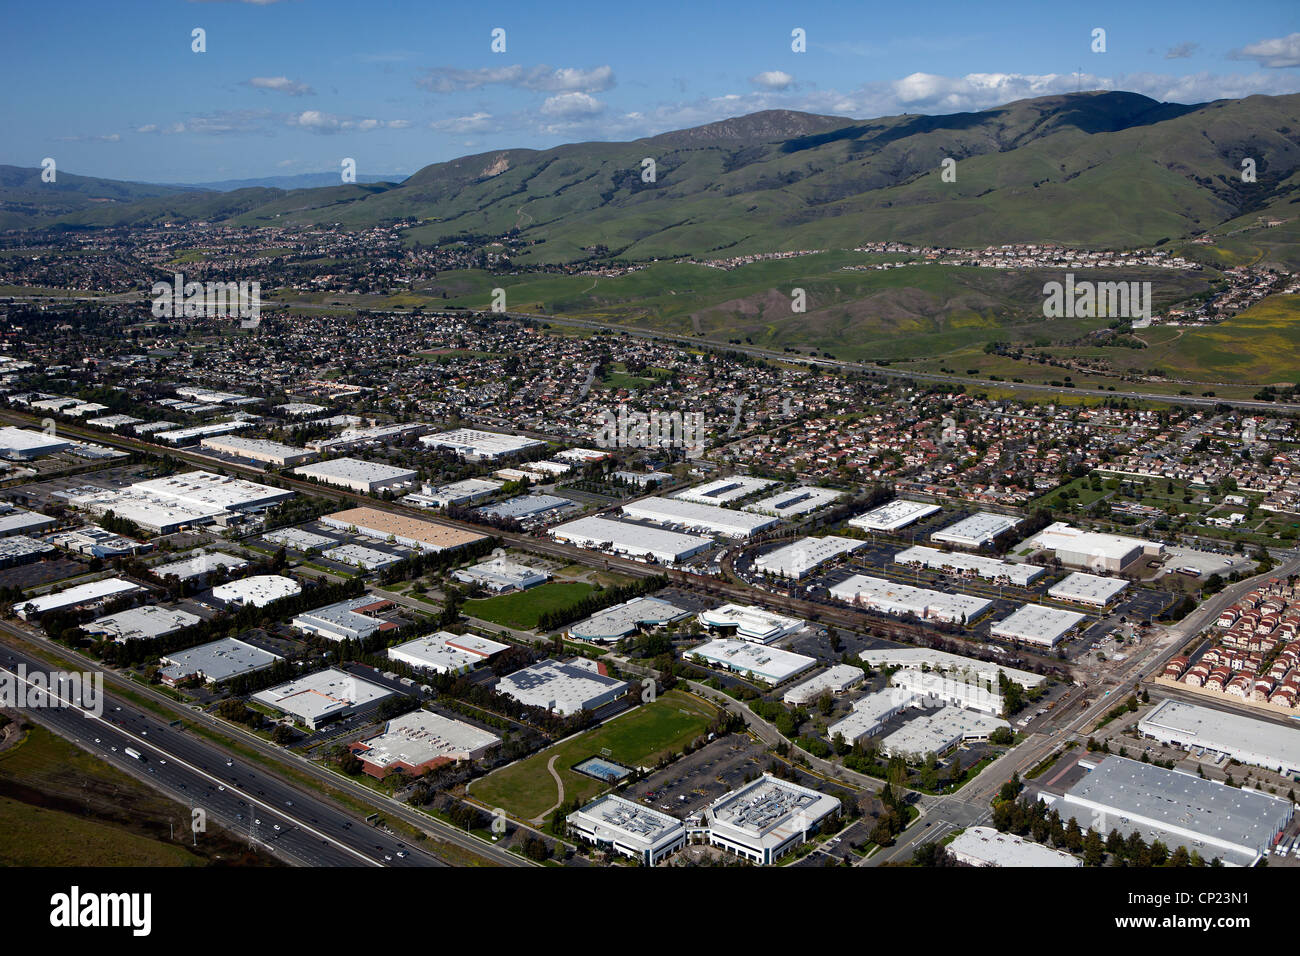 aerial photograph Fremont, Alameda County, California - Stock Image